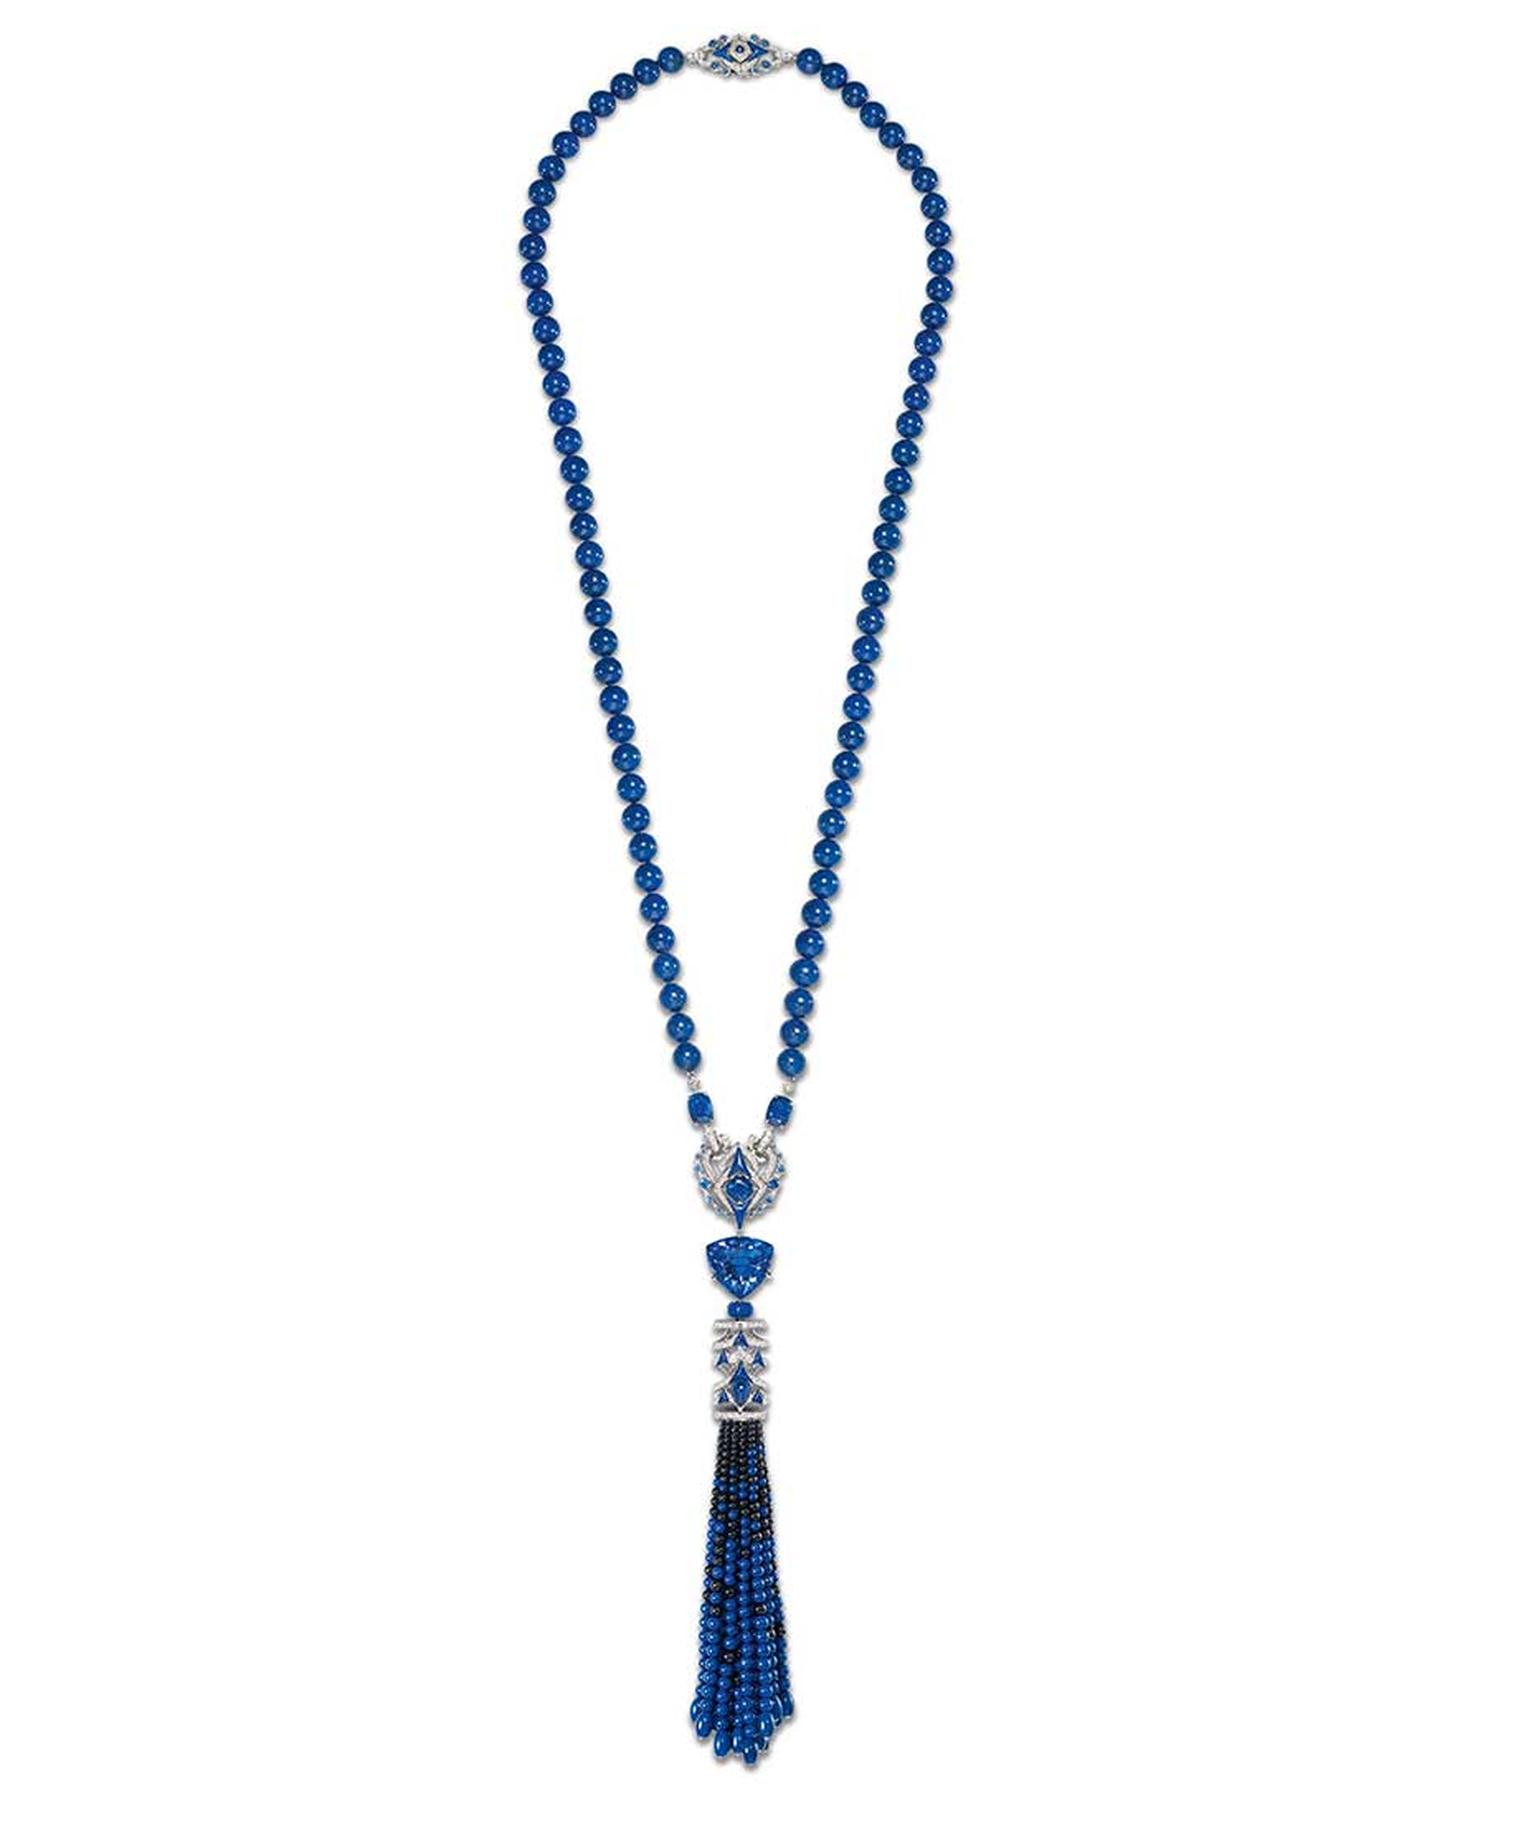 Chaumet Lumières d'Eau high jewellery necklace in white gold with a 45.64ct troidia-cut tanzanite, three cushion-cut sapphires, sapphires, sapphire beads, lapis lazuli beads and black spinel beads.